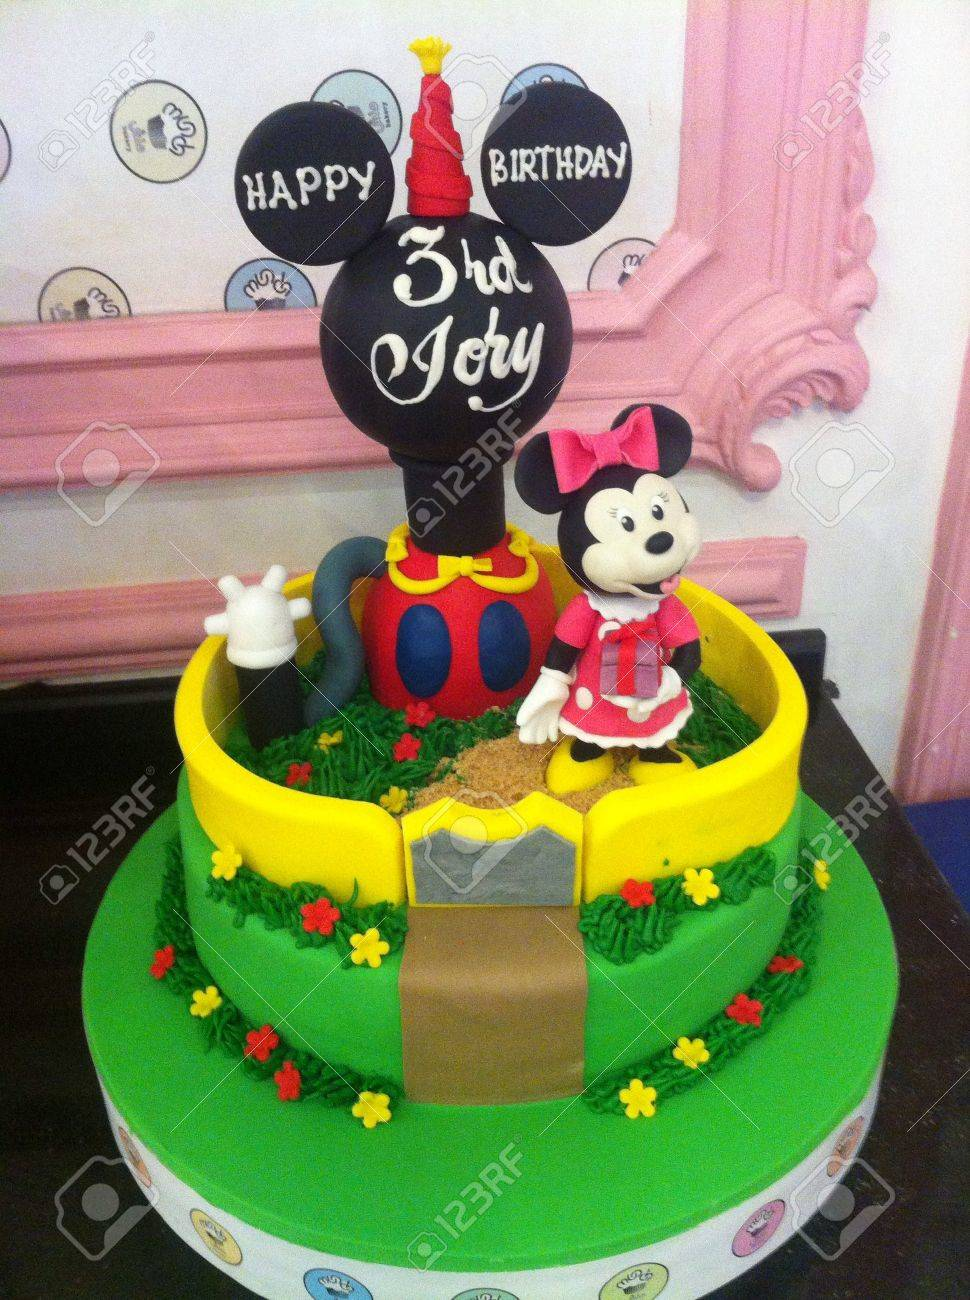 Disney Minnie Mouse Cake Design Stock Photo Picture And Royalty